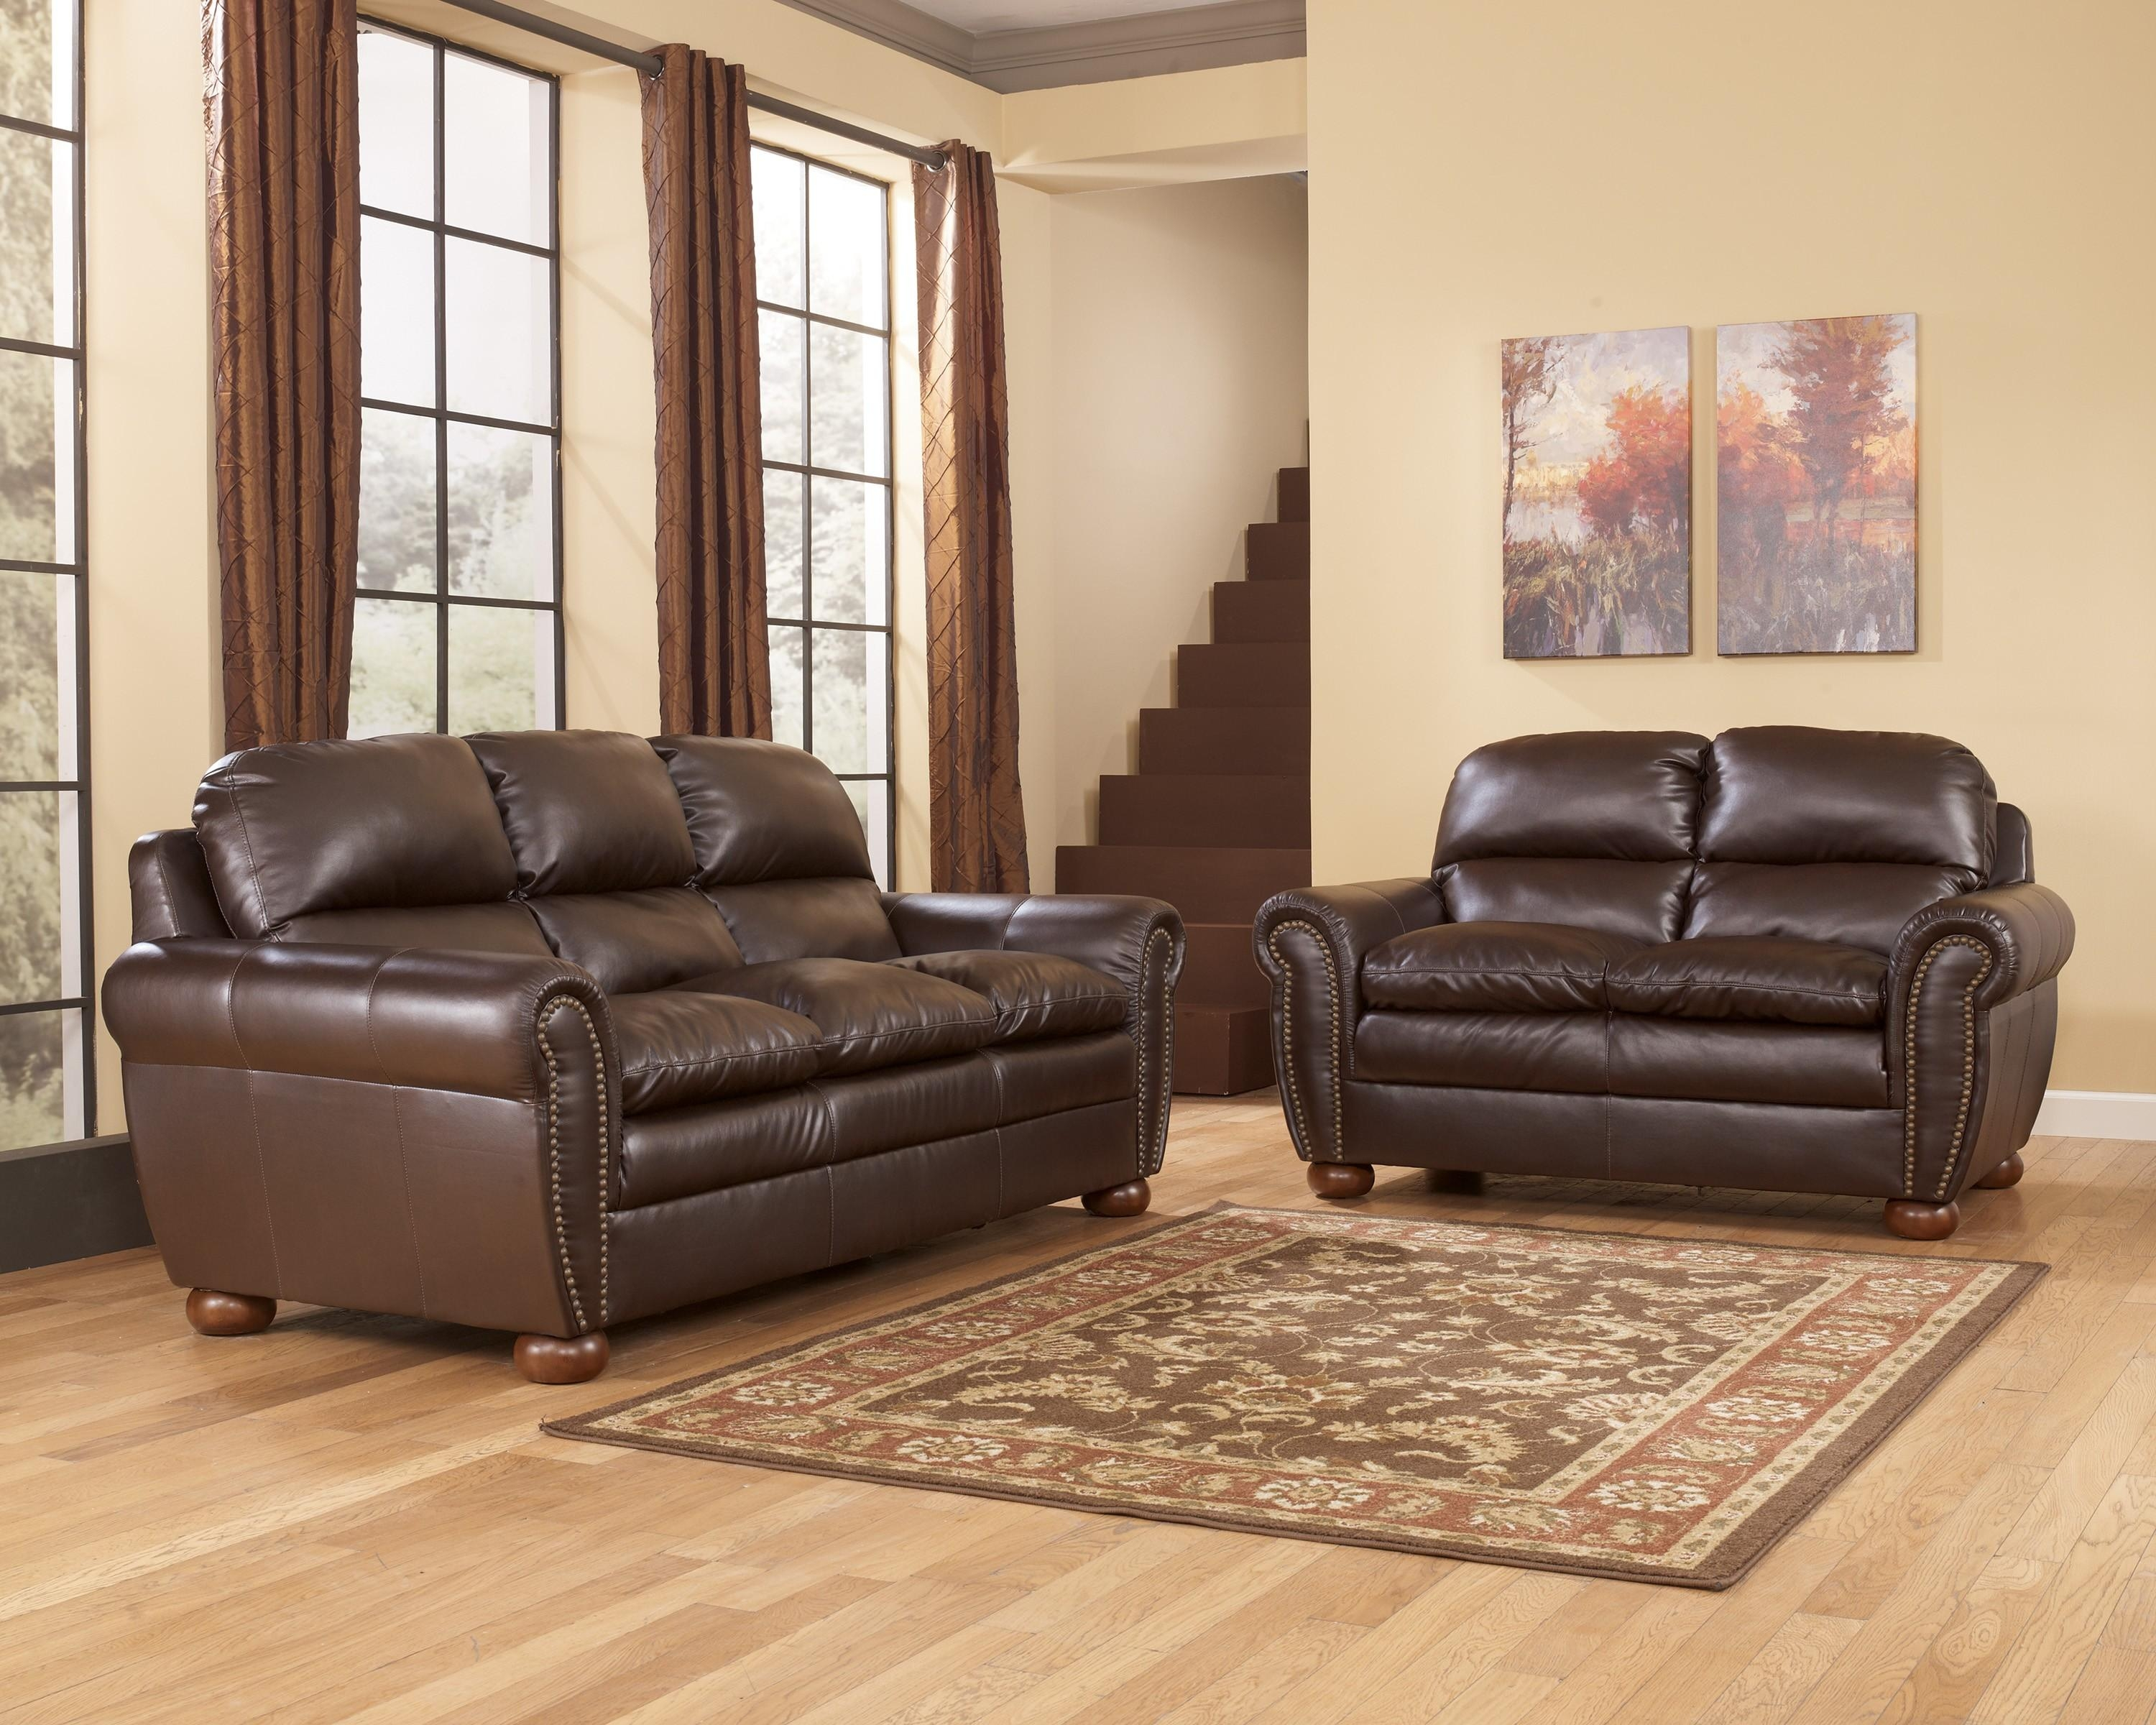 Furniture Home : Ashley Furniture Leather Sectional Sofa 92 With Pertaining To Ashley Furniture Leather Sectional Sofas (Image 11 of 20)